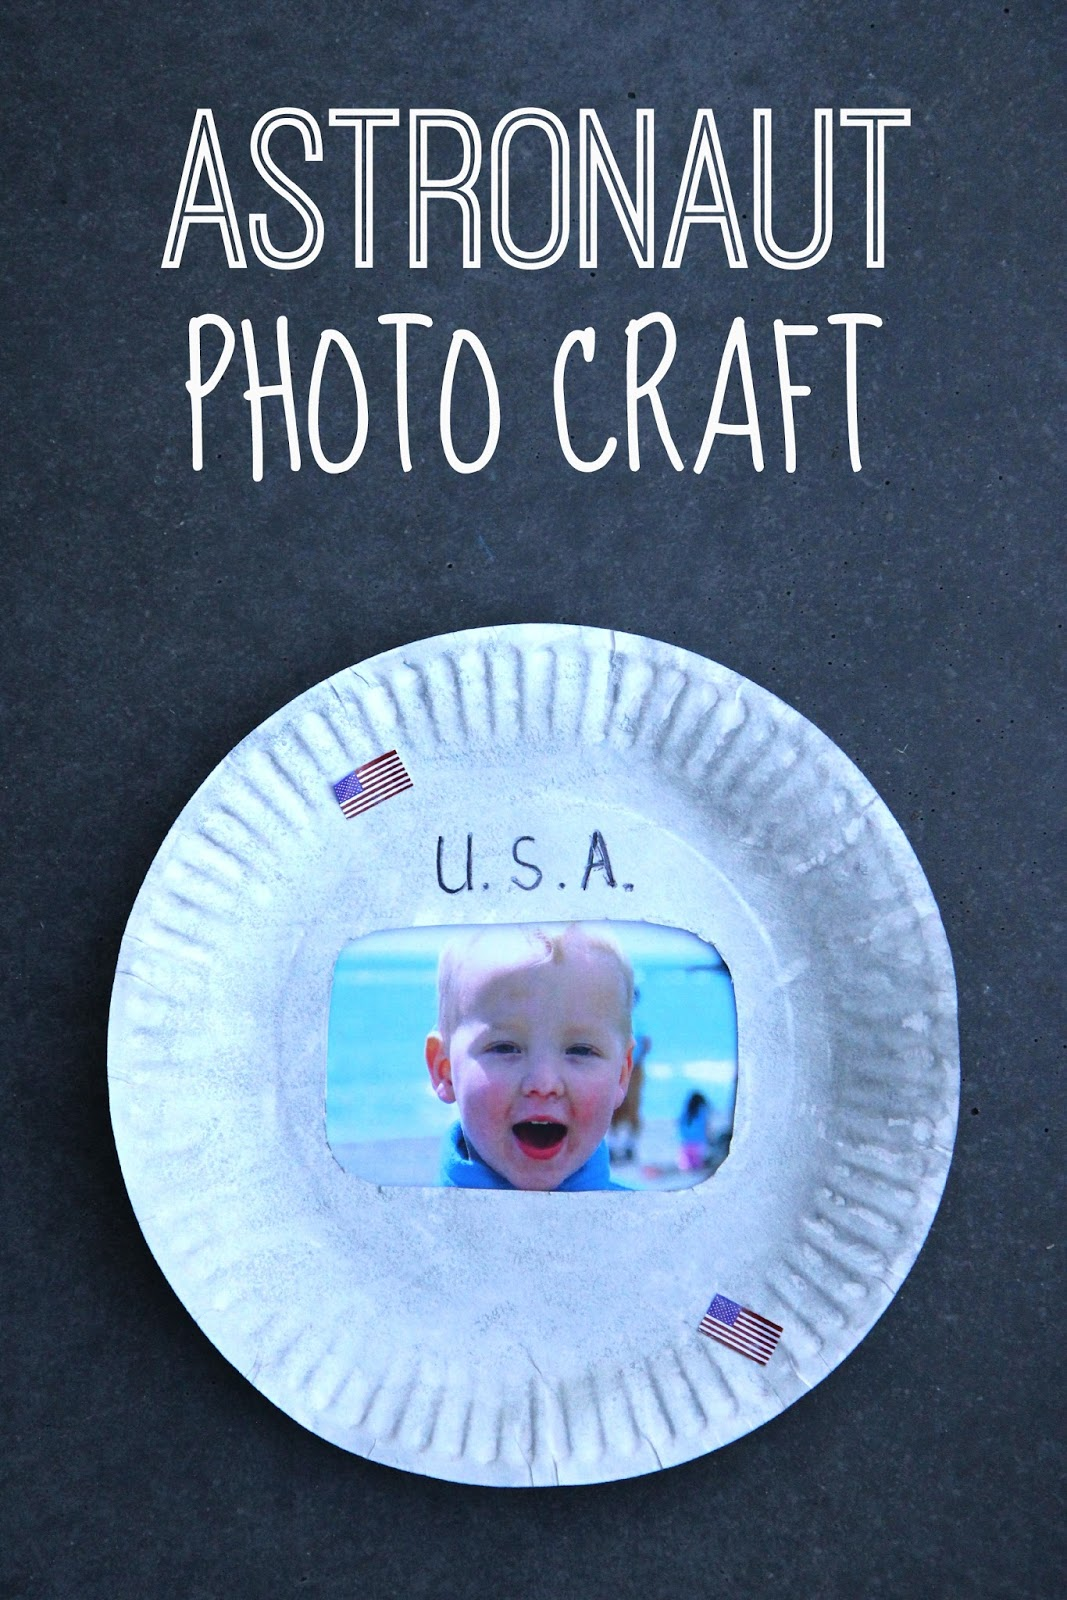 Space Crafts For Kids Toddler Approved Astronaut Photo Craft For Kids